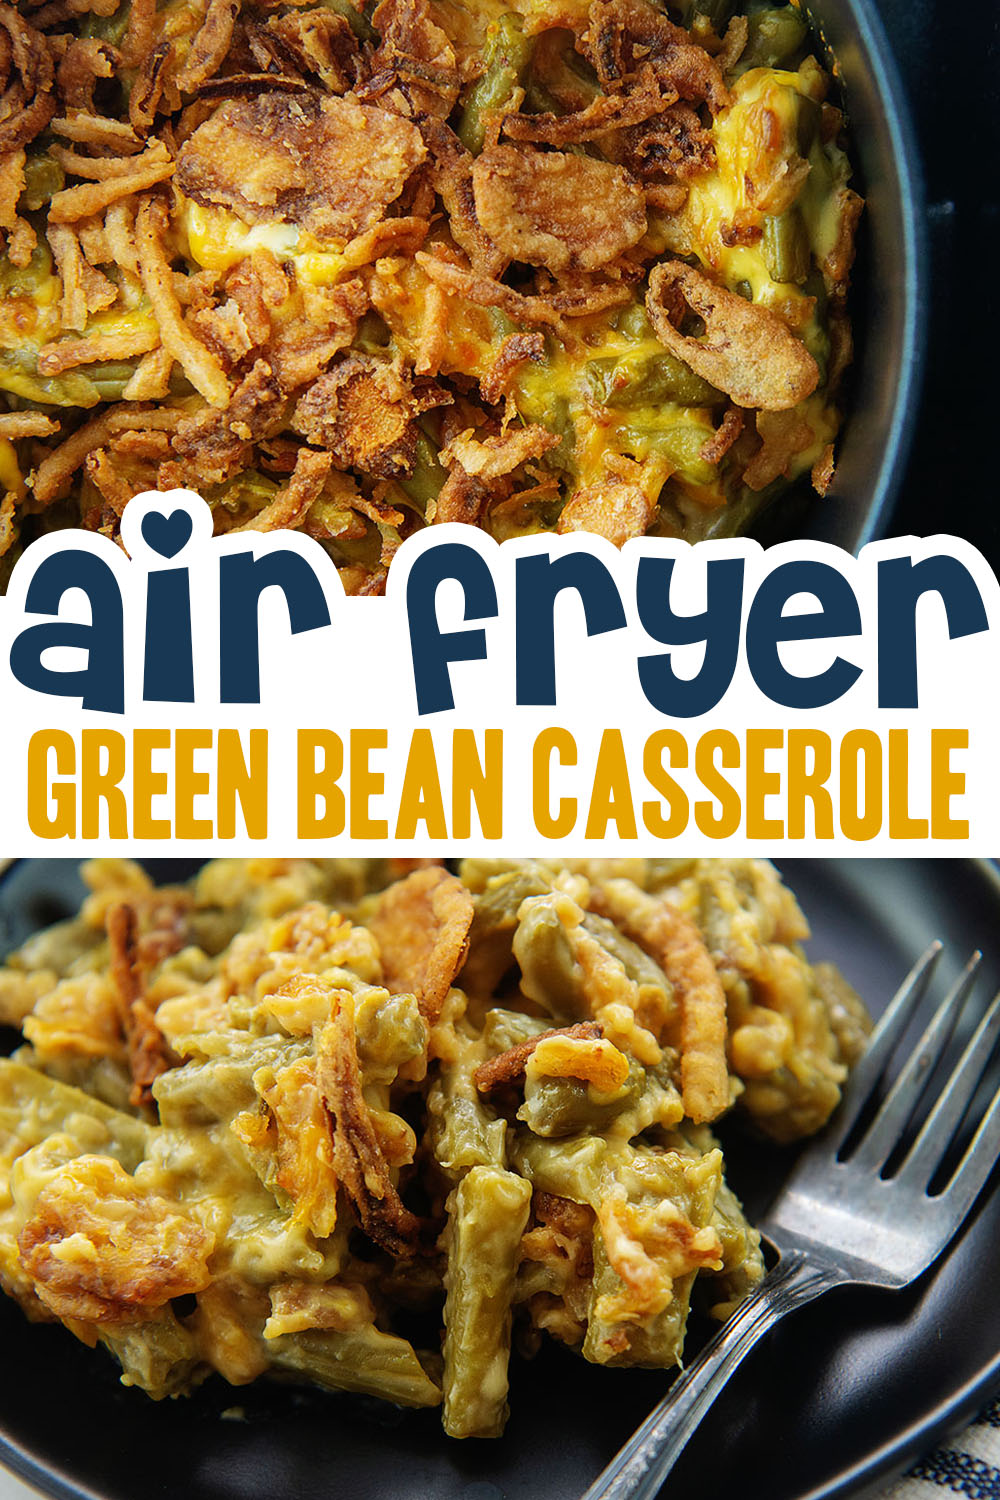 This green bean casserole is so good it can easily be a main dish instead of a side dish.  I can't get enough of it!